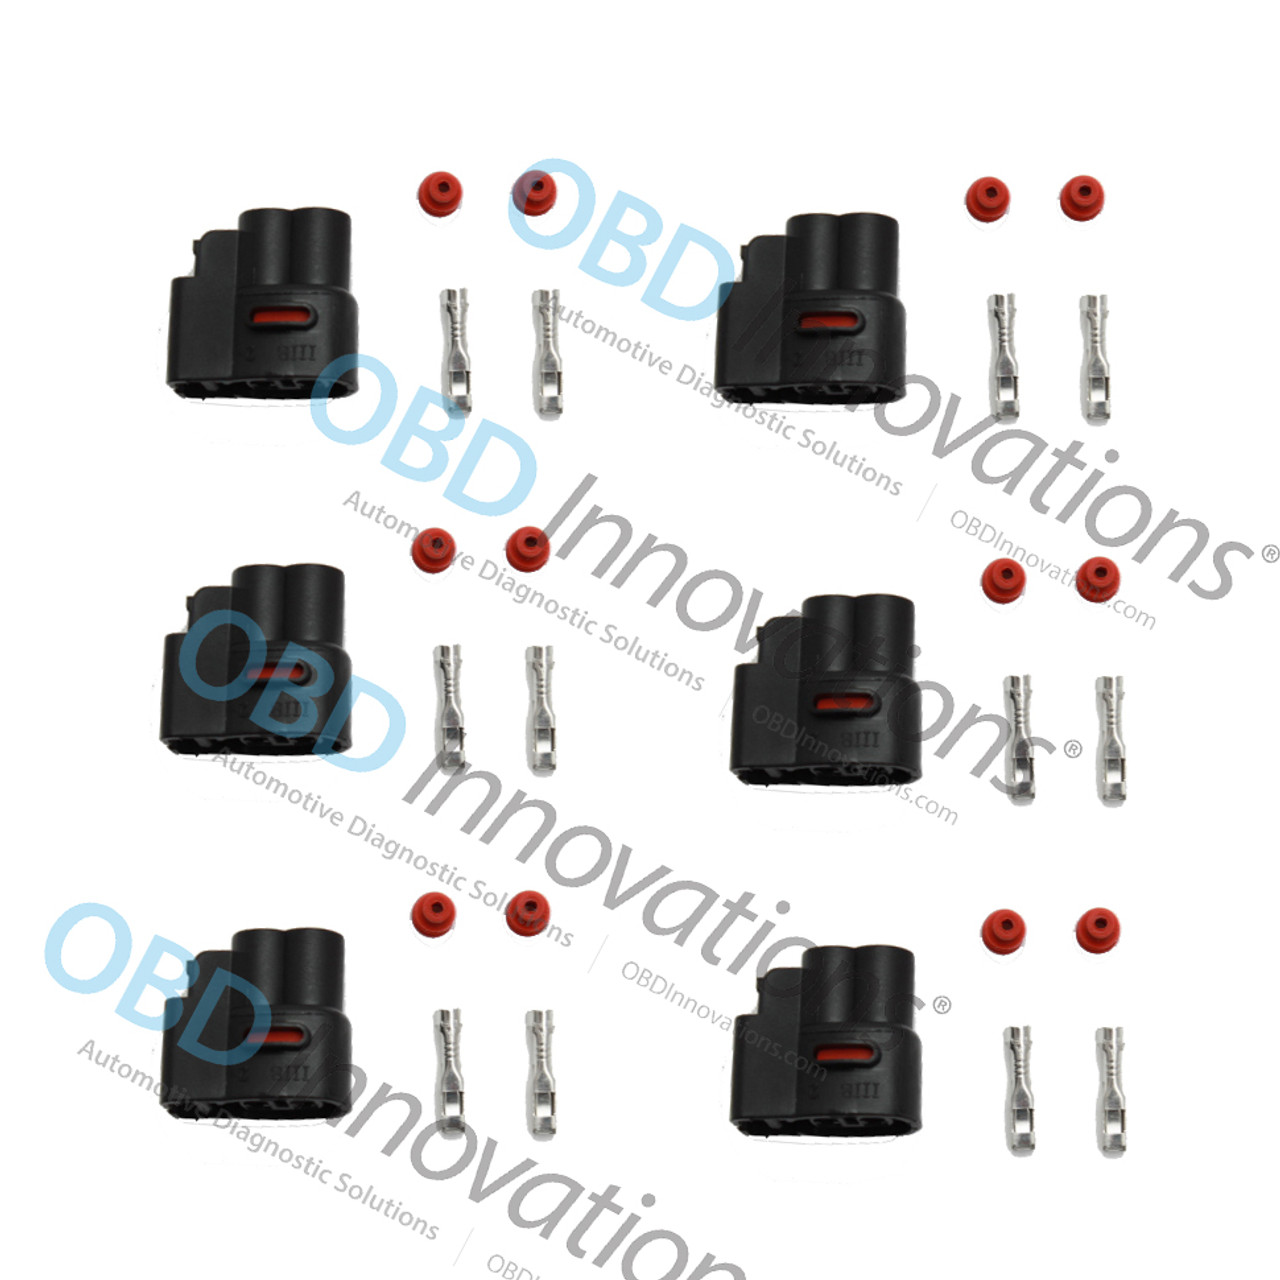 6x Pack Ignition Coil Pack Connector Kit For Toyota Supra